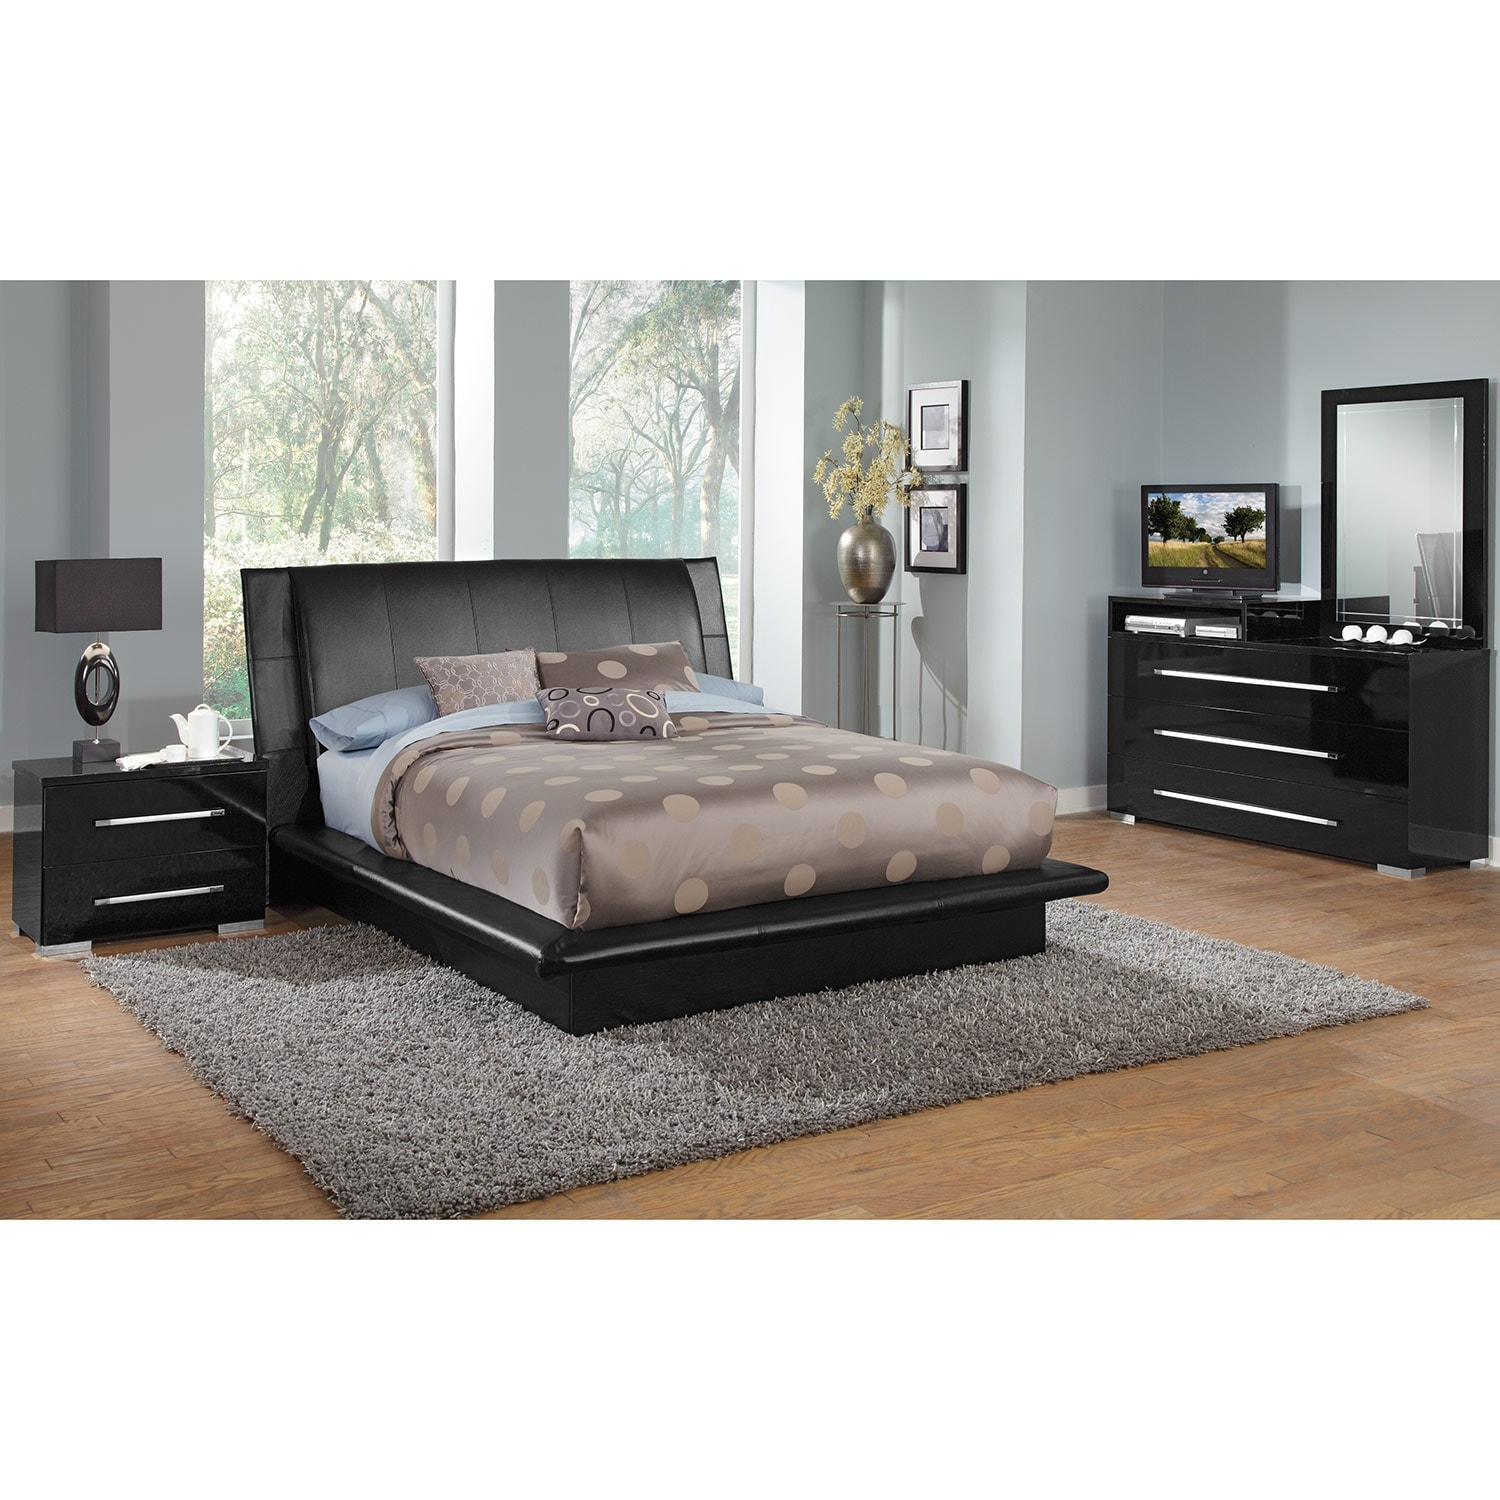 Dimora black queen bed value city furniture - Queen bedroom sets ...